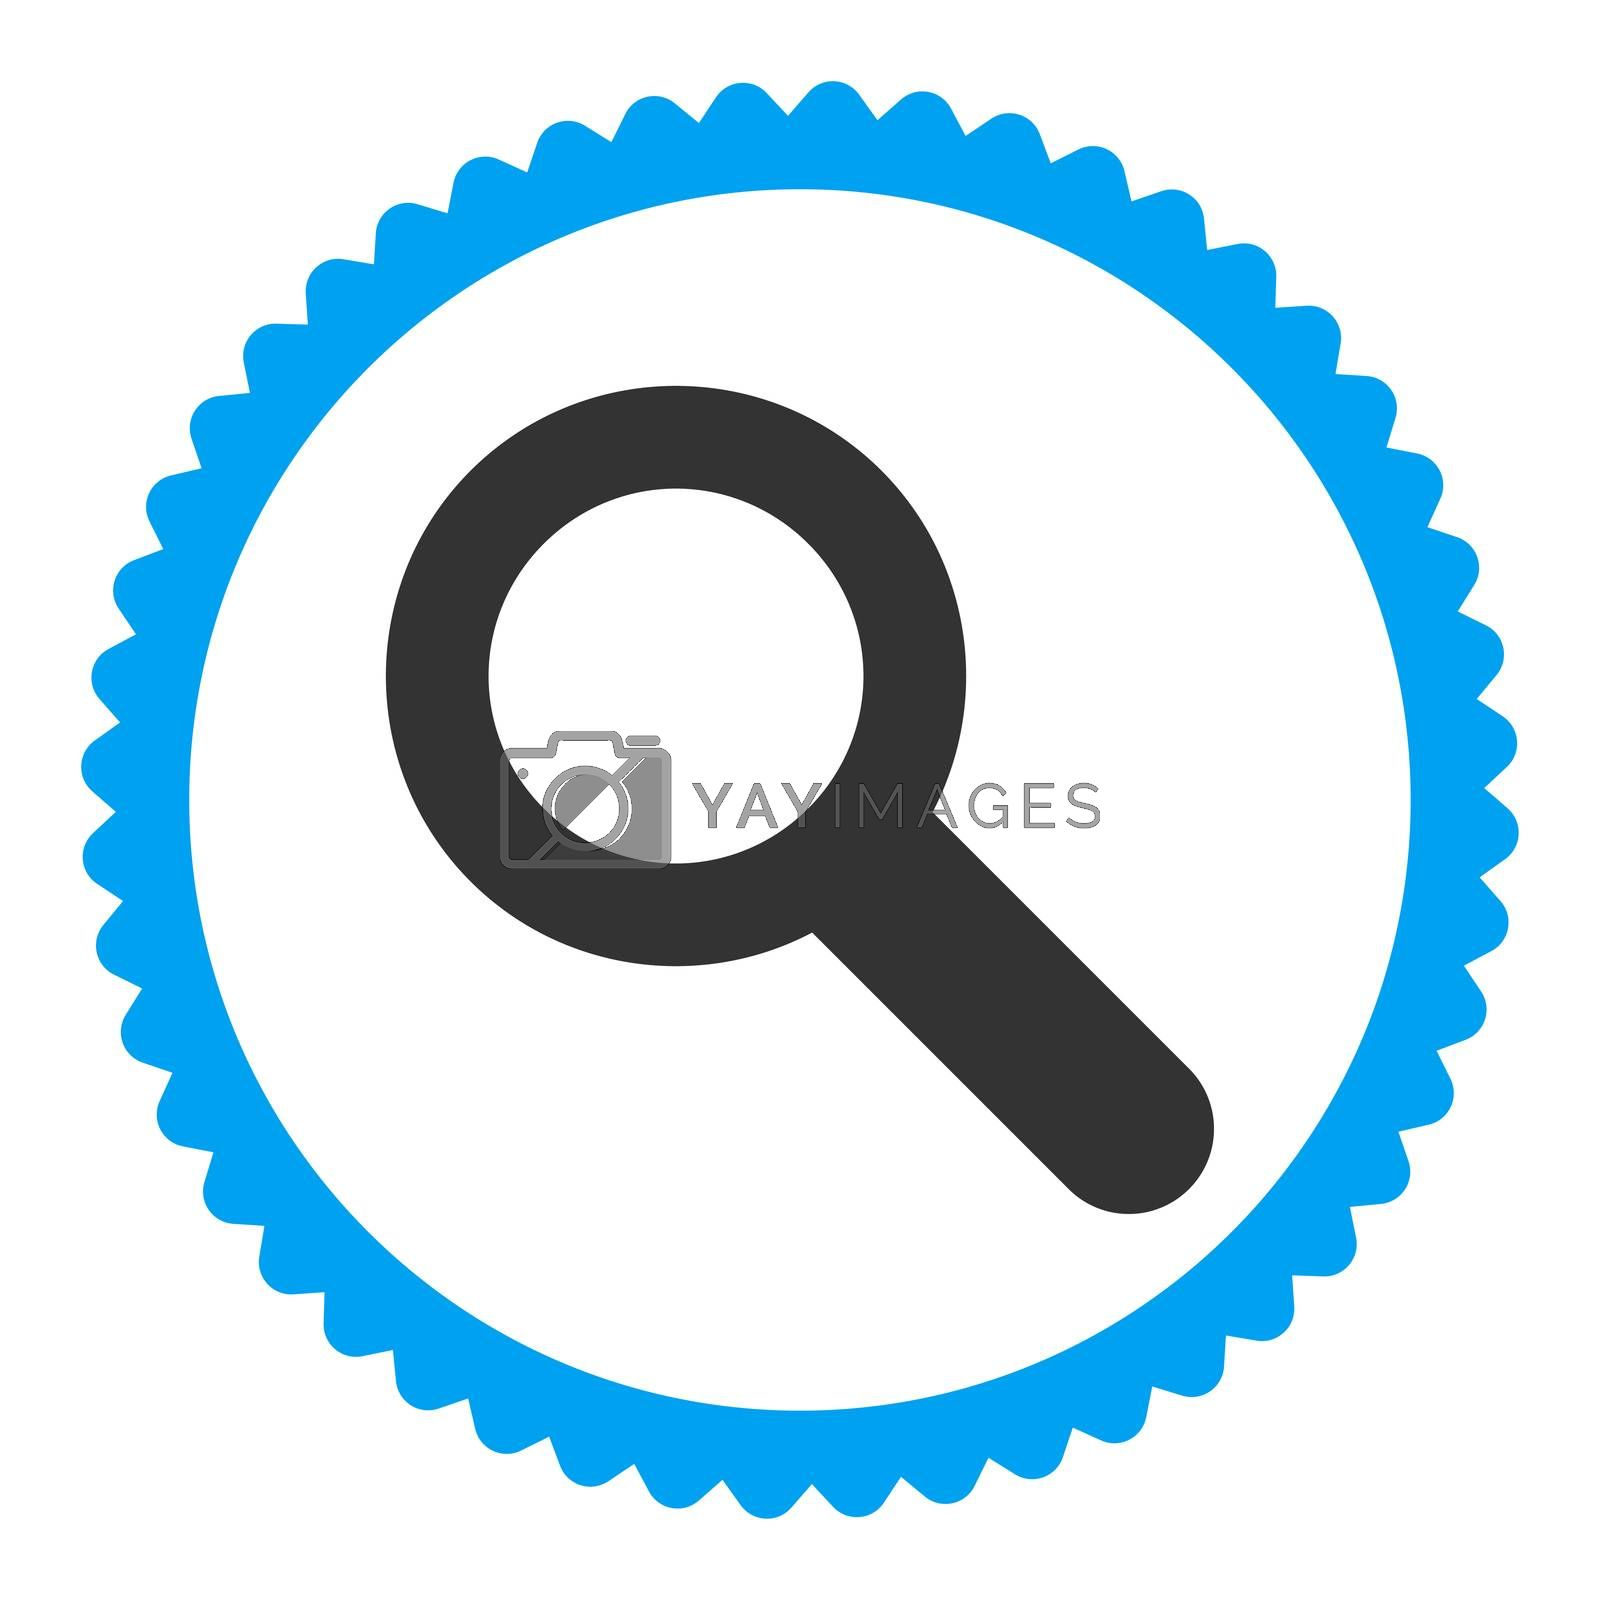 Search flat blue and gray colors round stamp icon by Aha-Soft